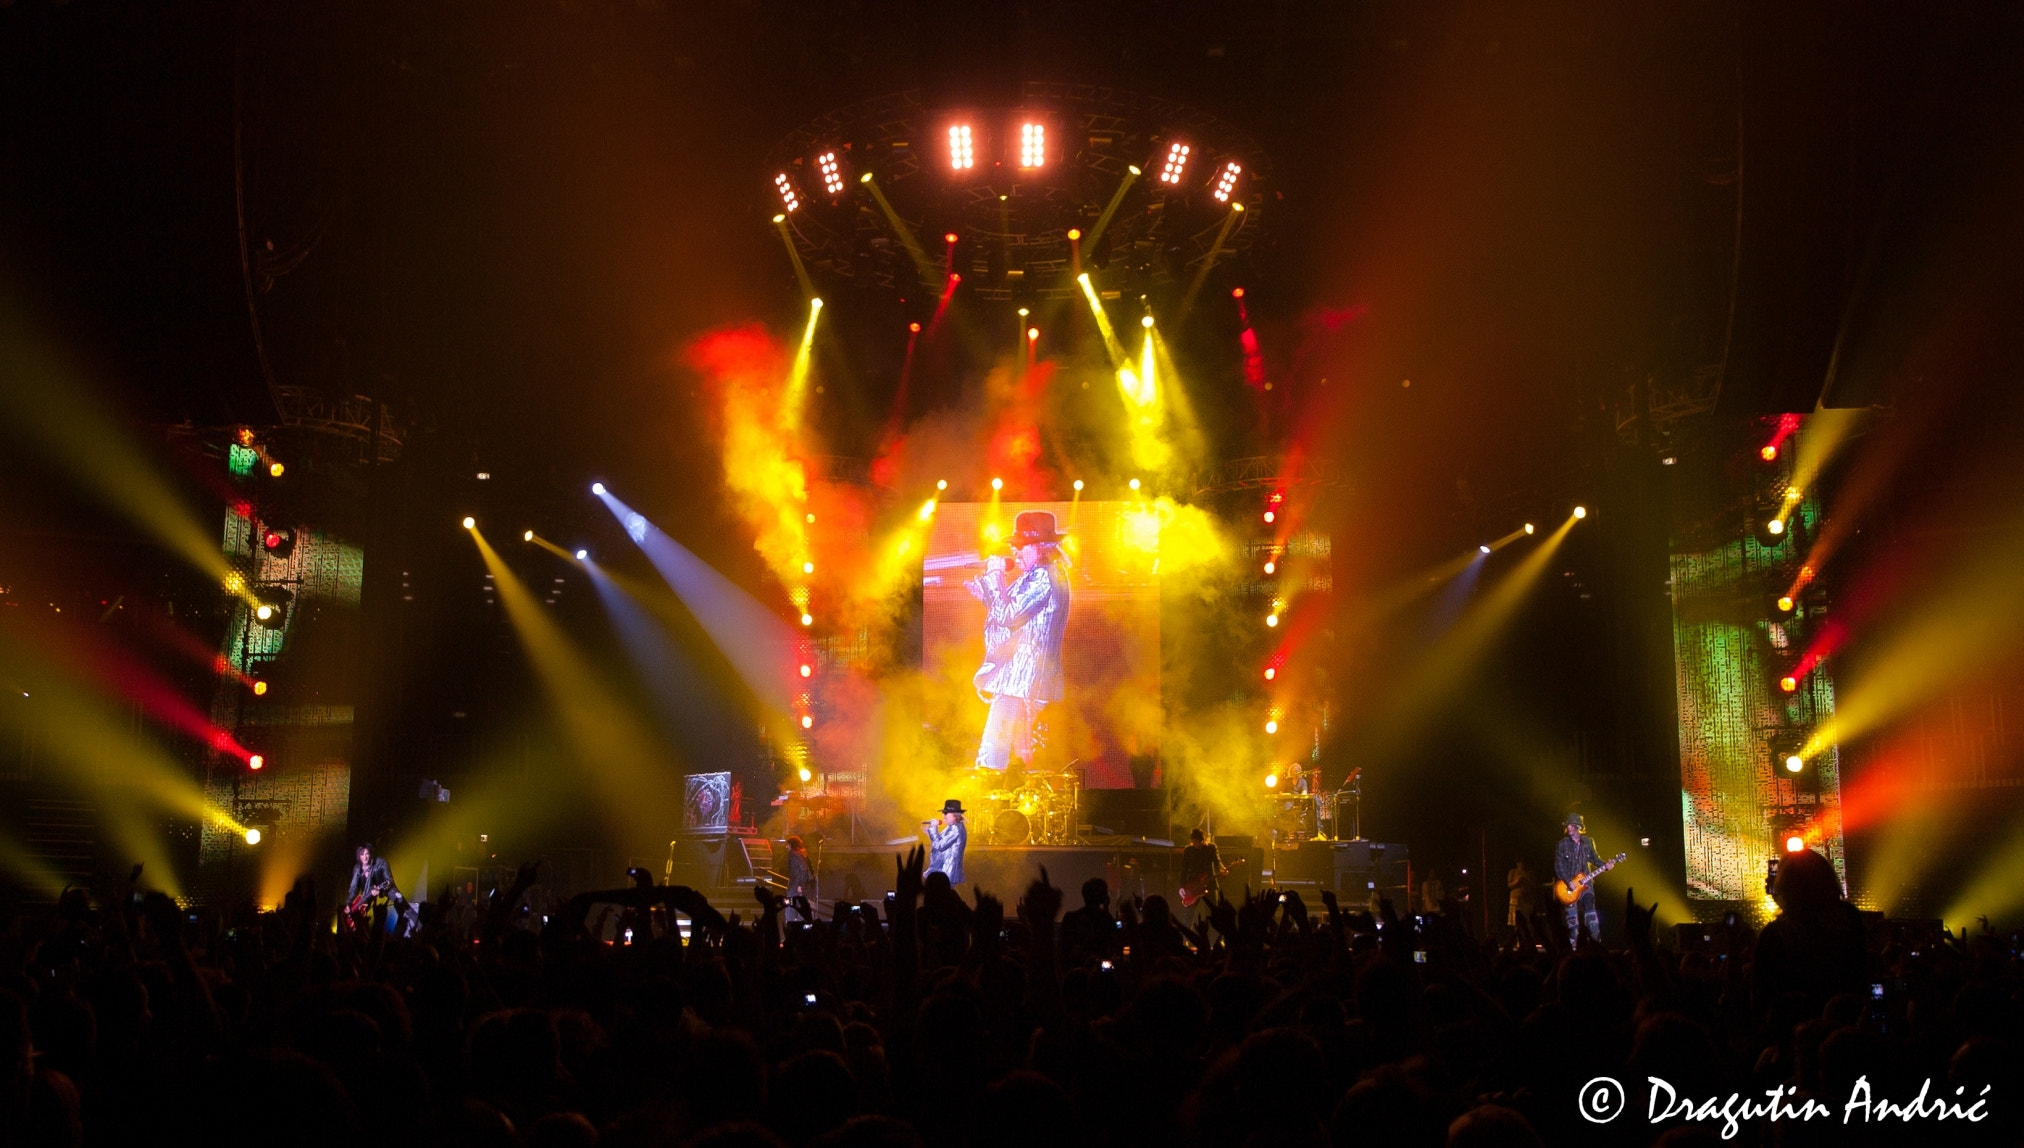 Photograph Guns n' Roses - live! by Dragutin Andric on 500px